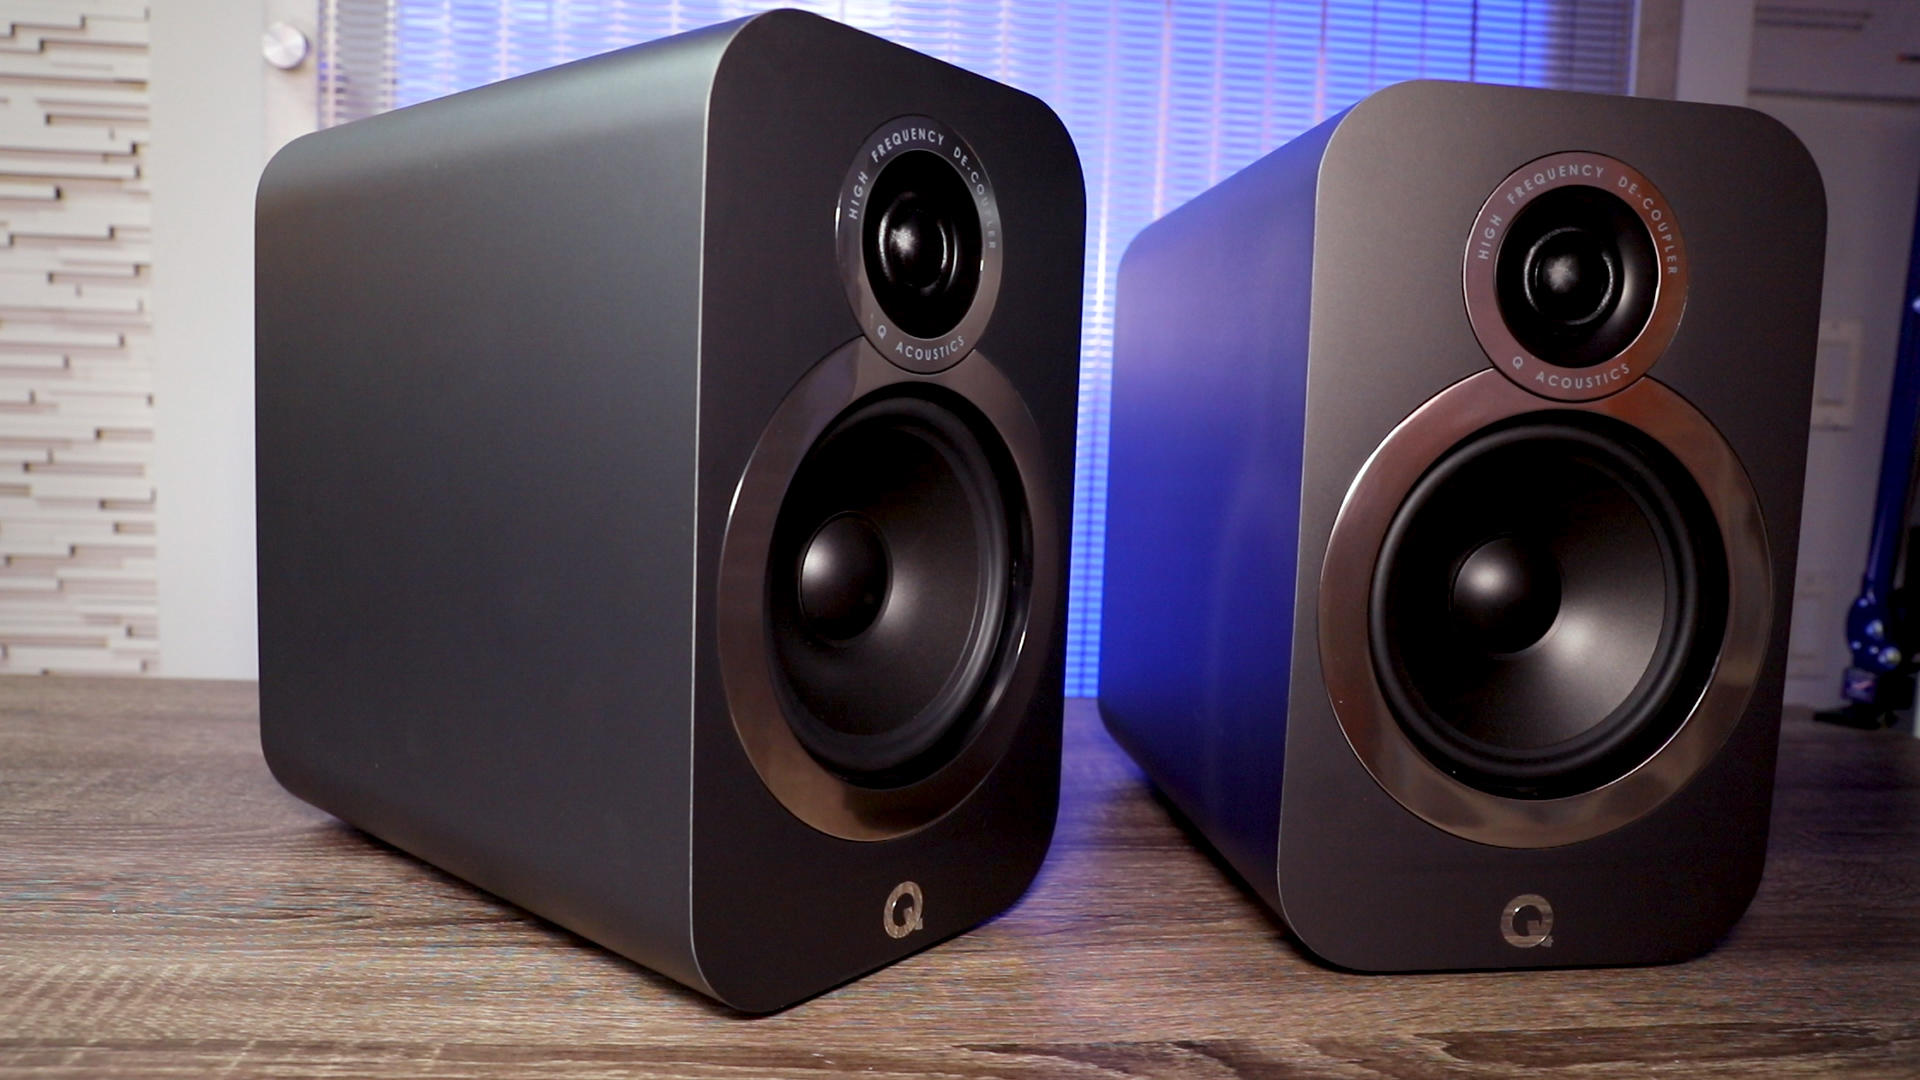 Video: Q Acoustics' 3020i speakers improve on the original in almost every way